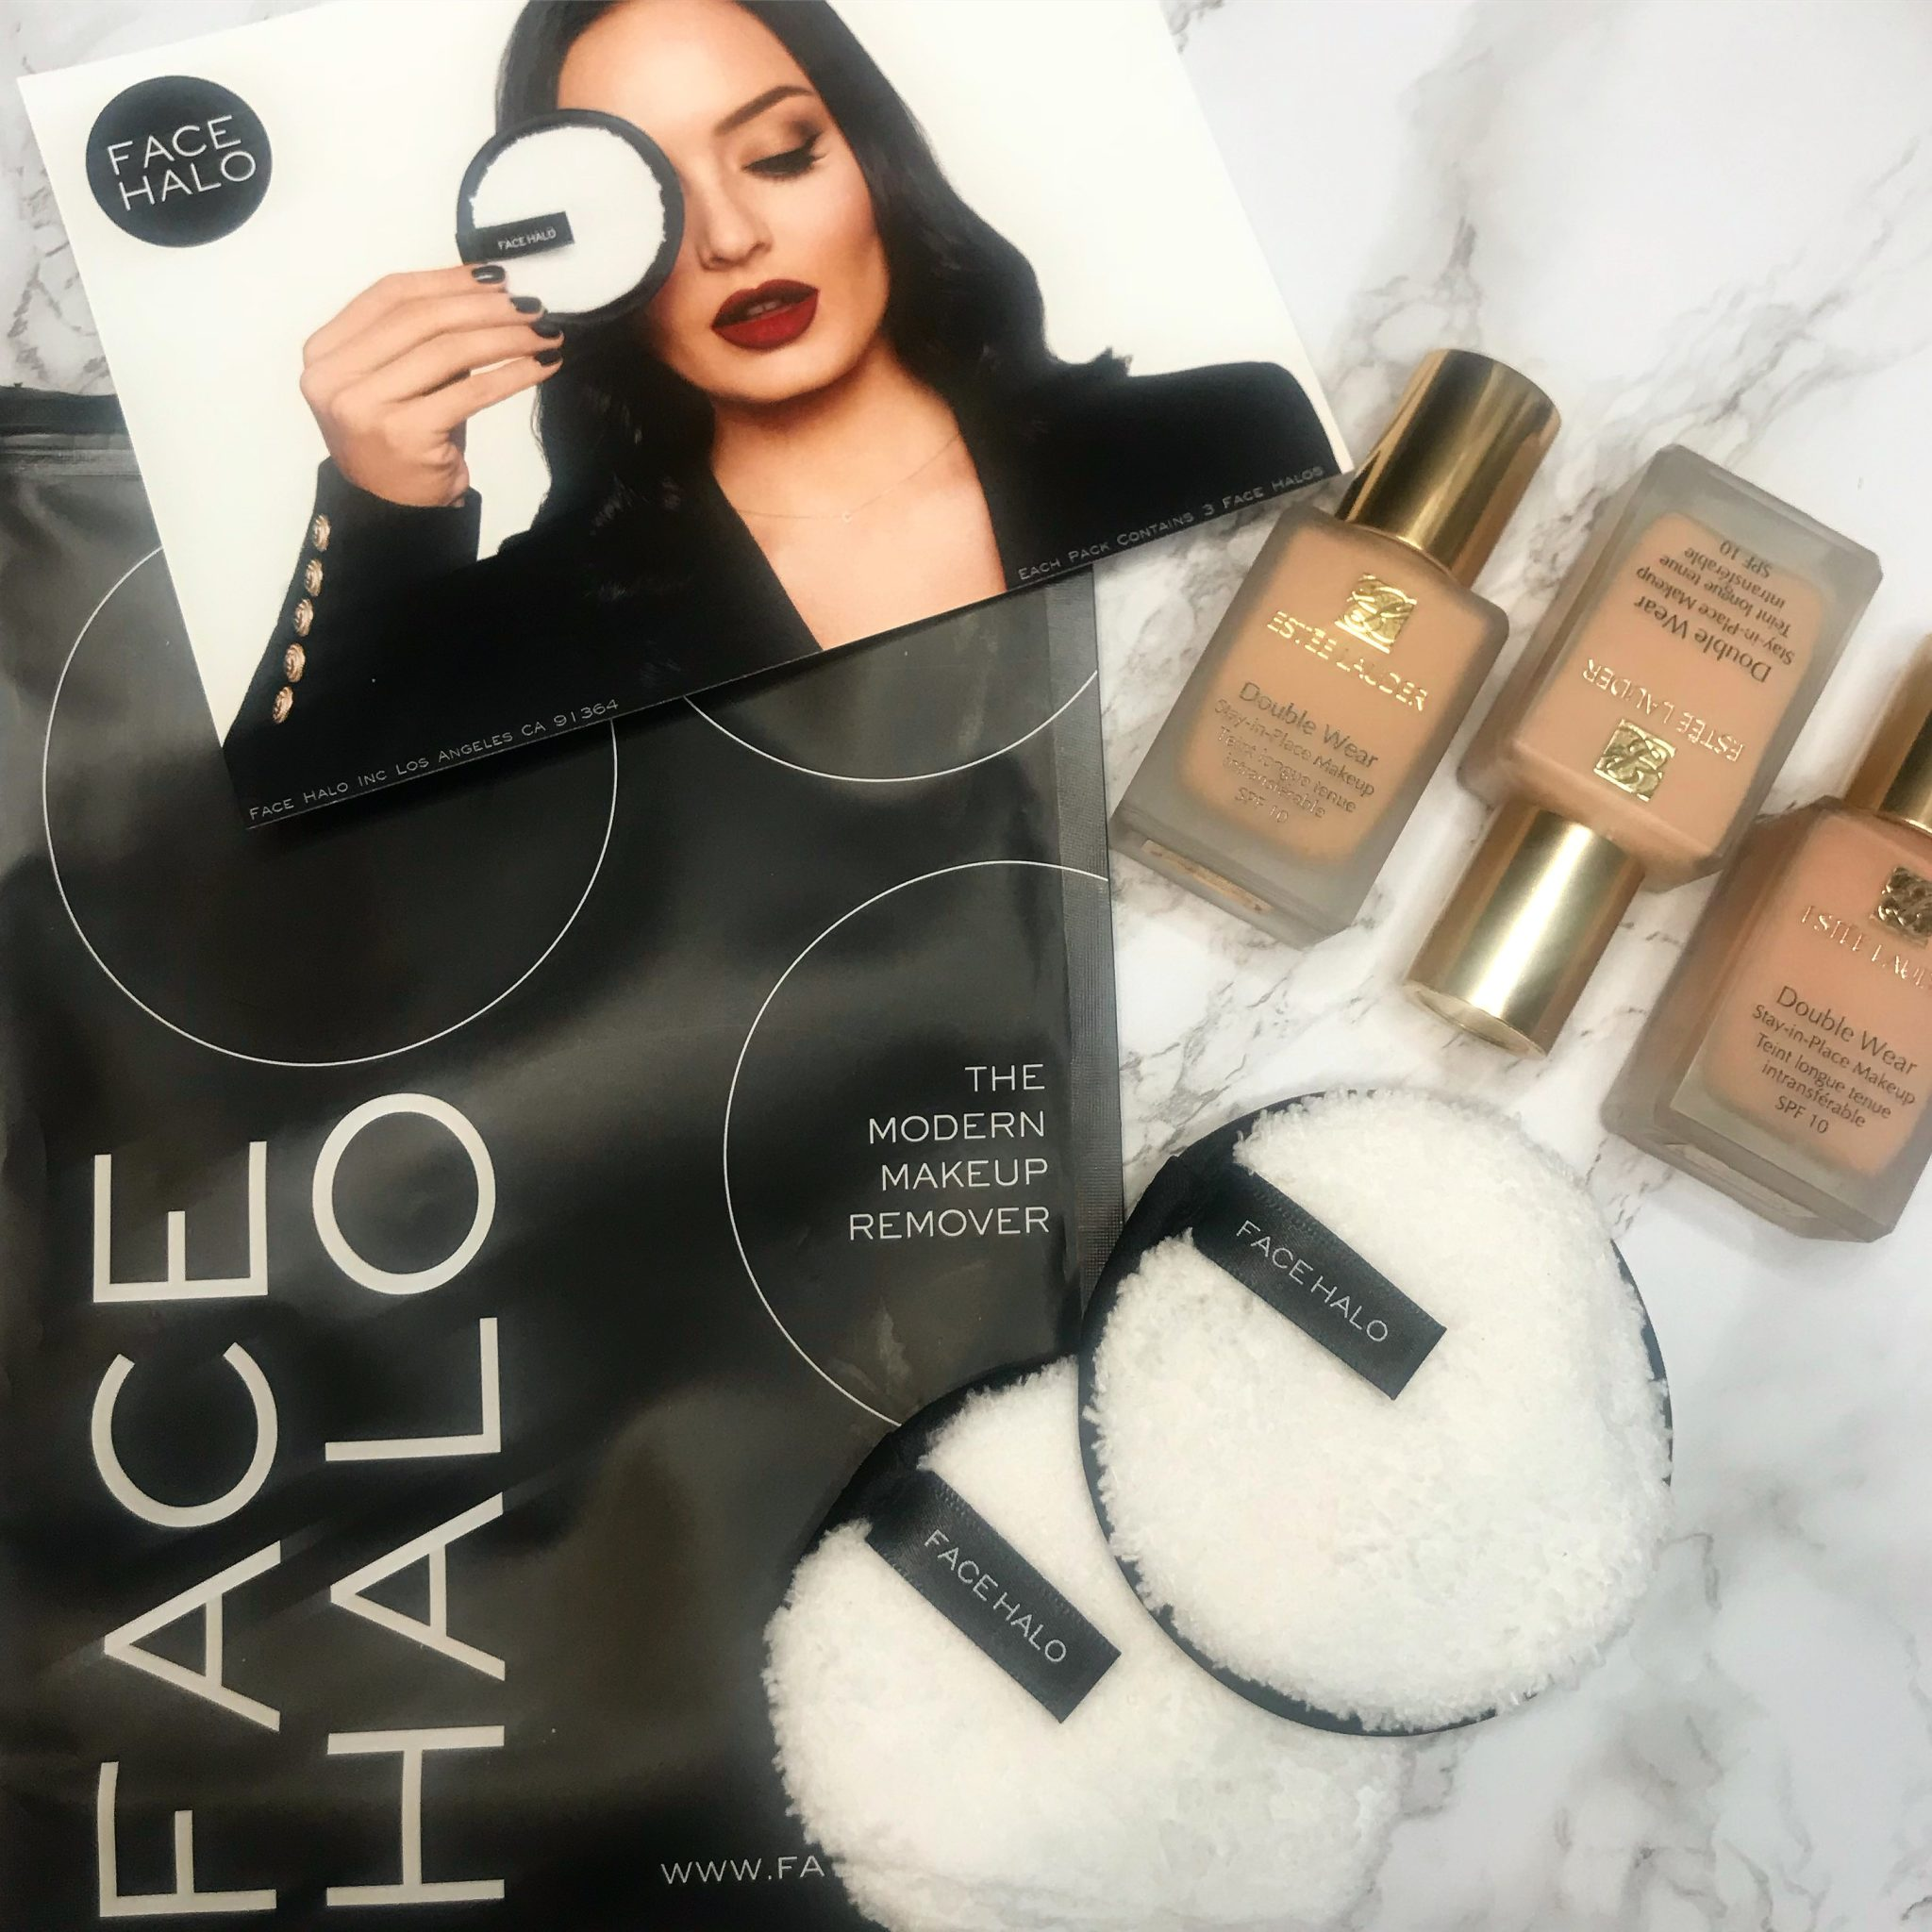 Face Halo – The Modern Makeup Remover